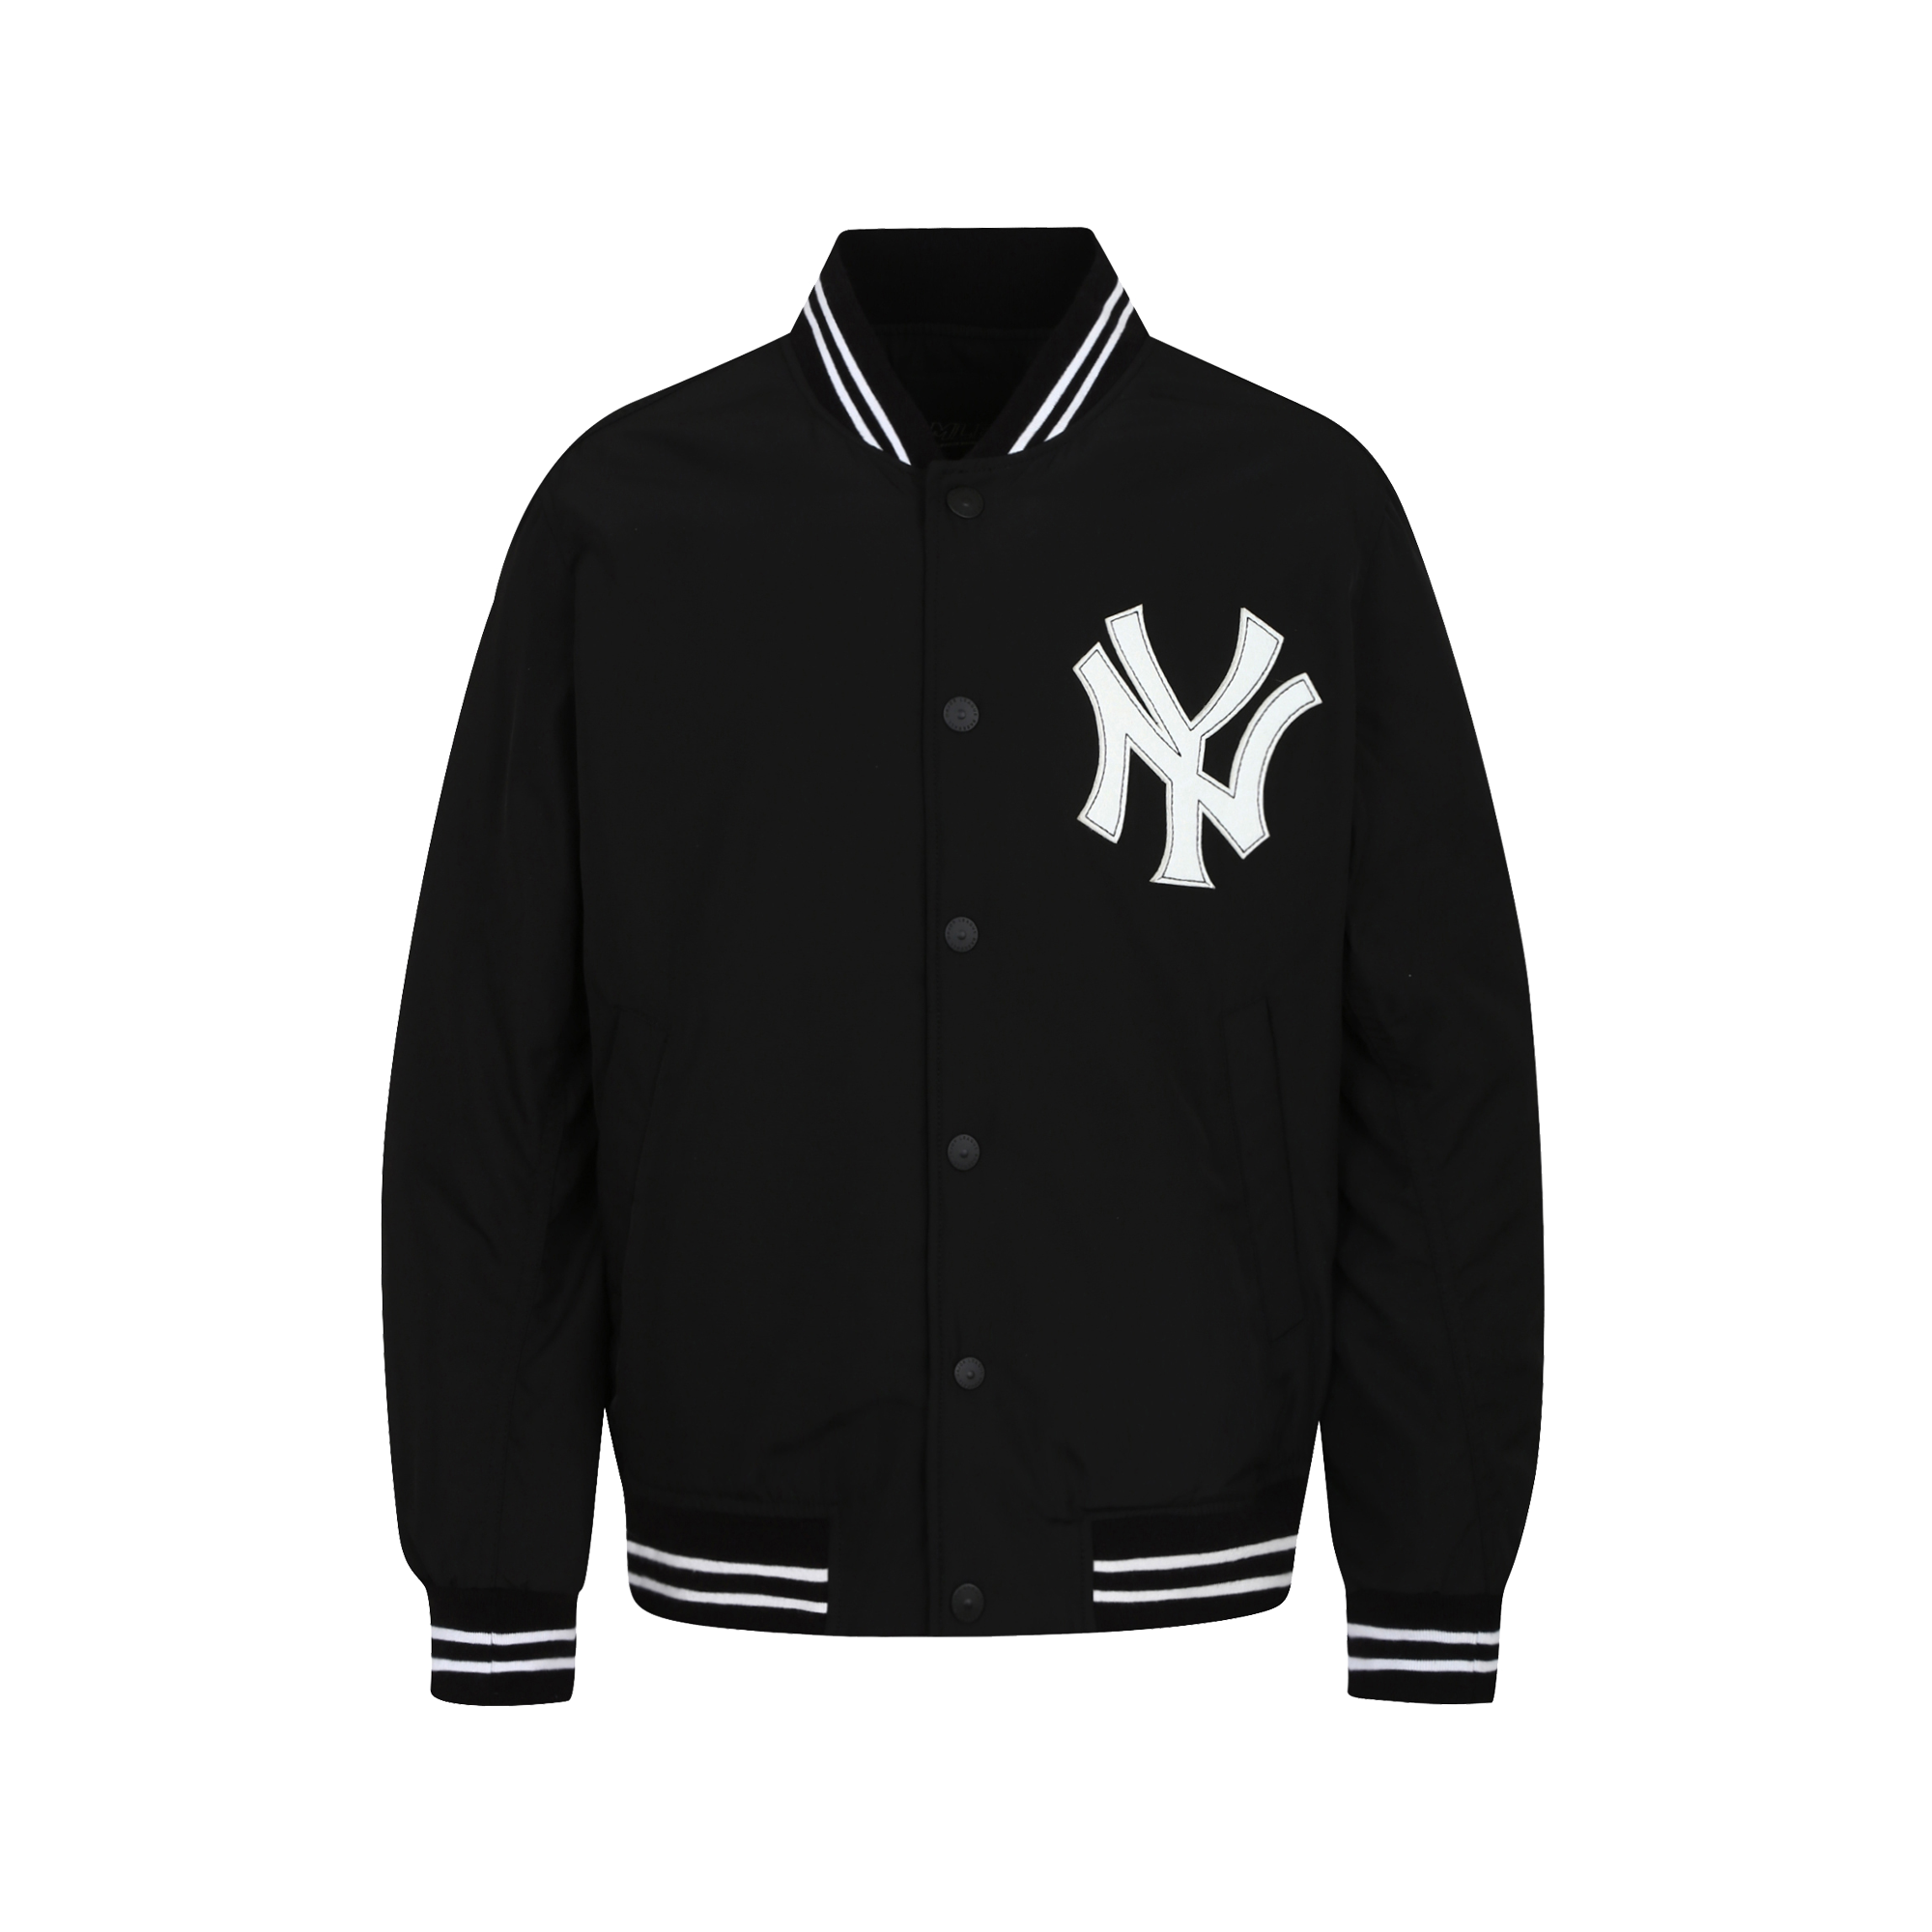 NEW YORK YANKEES BIG LOGO BASEBALL PADDED JACKET